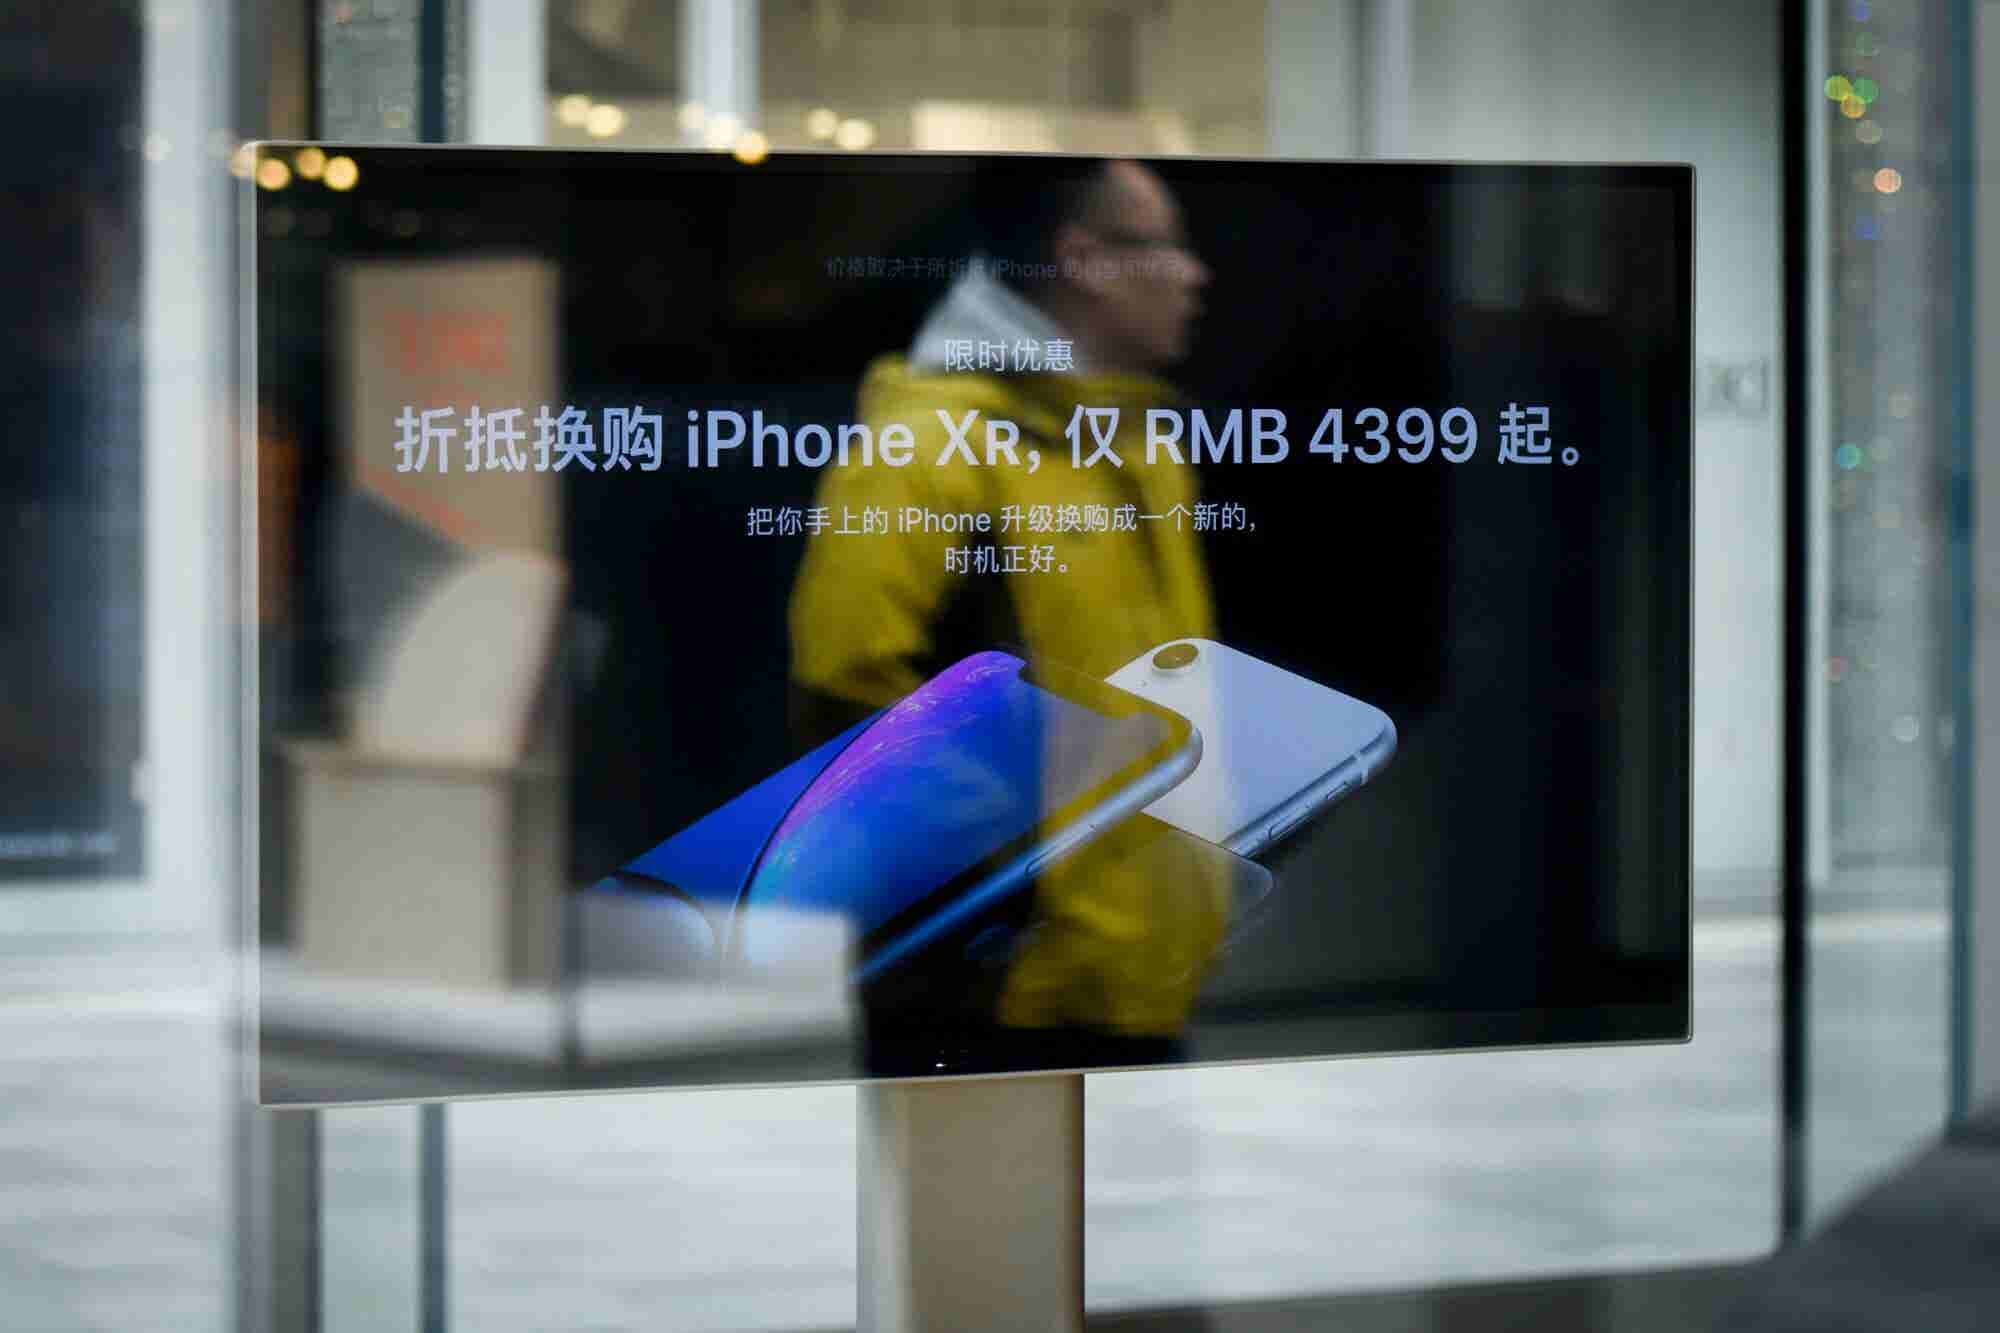 Apple Stock Free Falls After Poor Sales in China